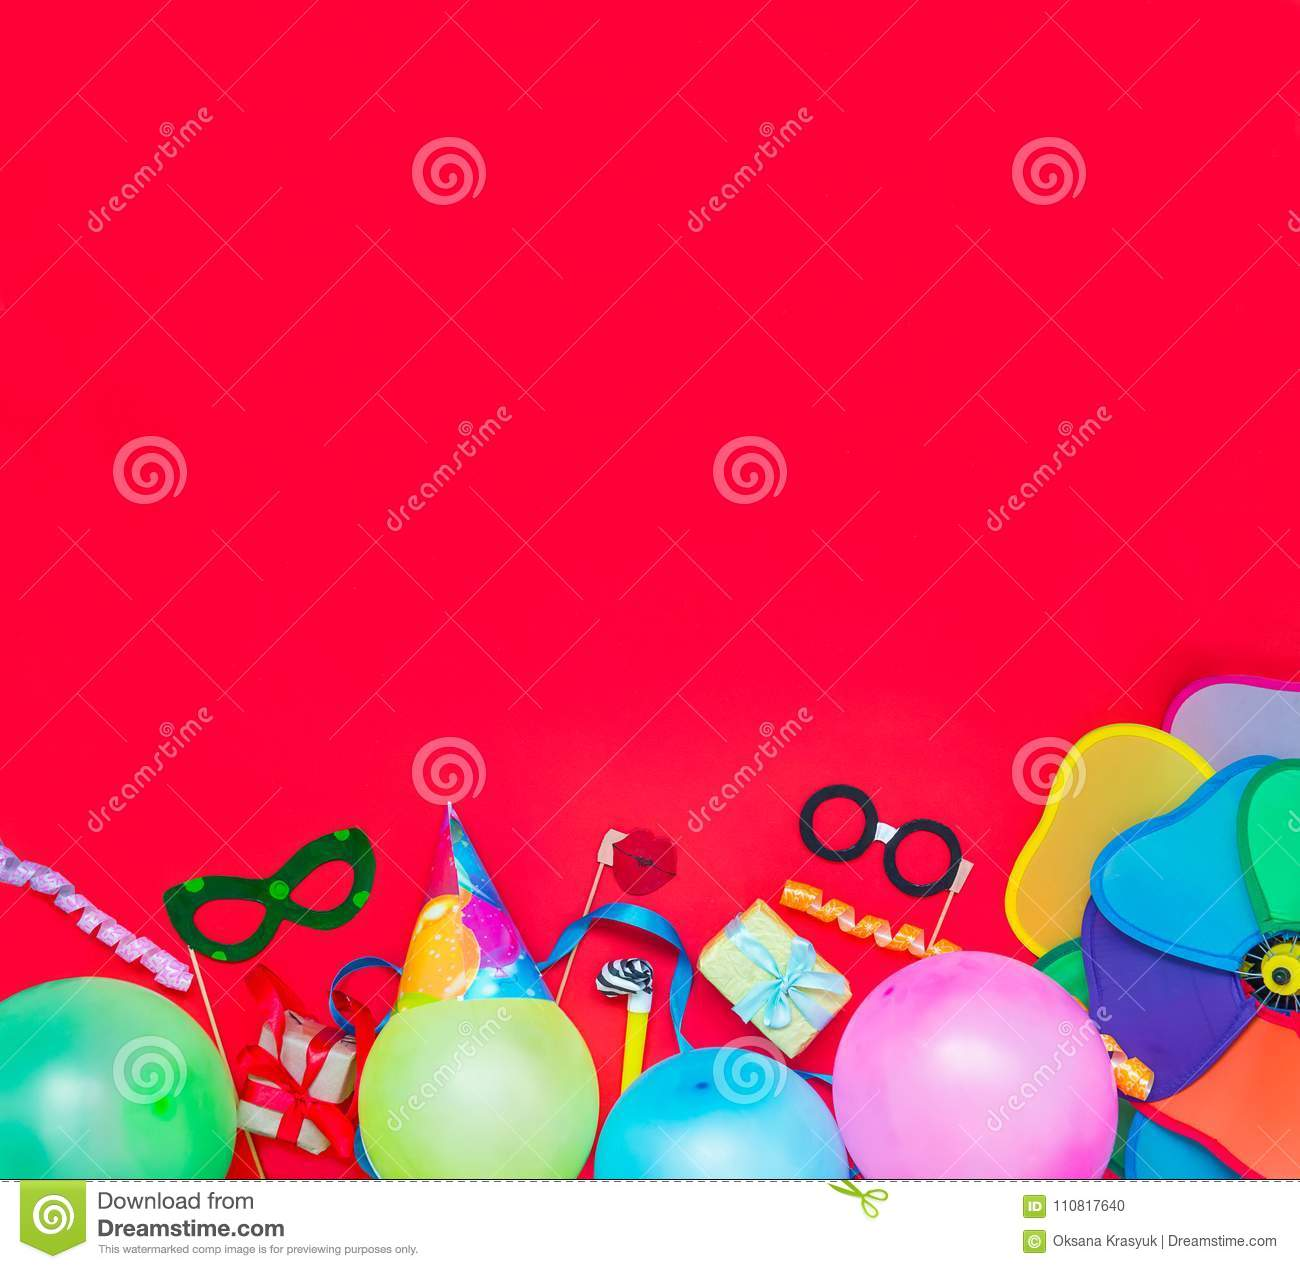 Bright red Festive background with party tools and decoration - baloons, funny carnival masks, festive tinsel. Happy birthday gree